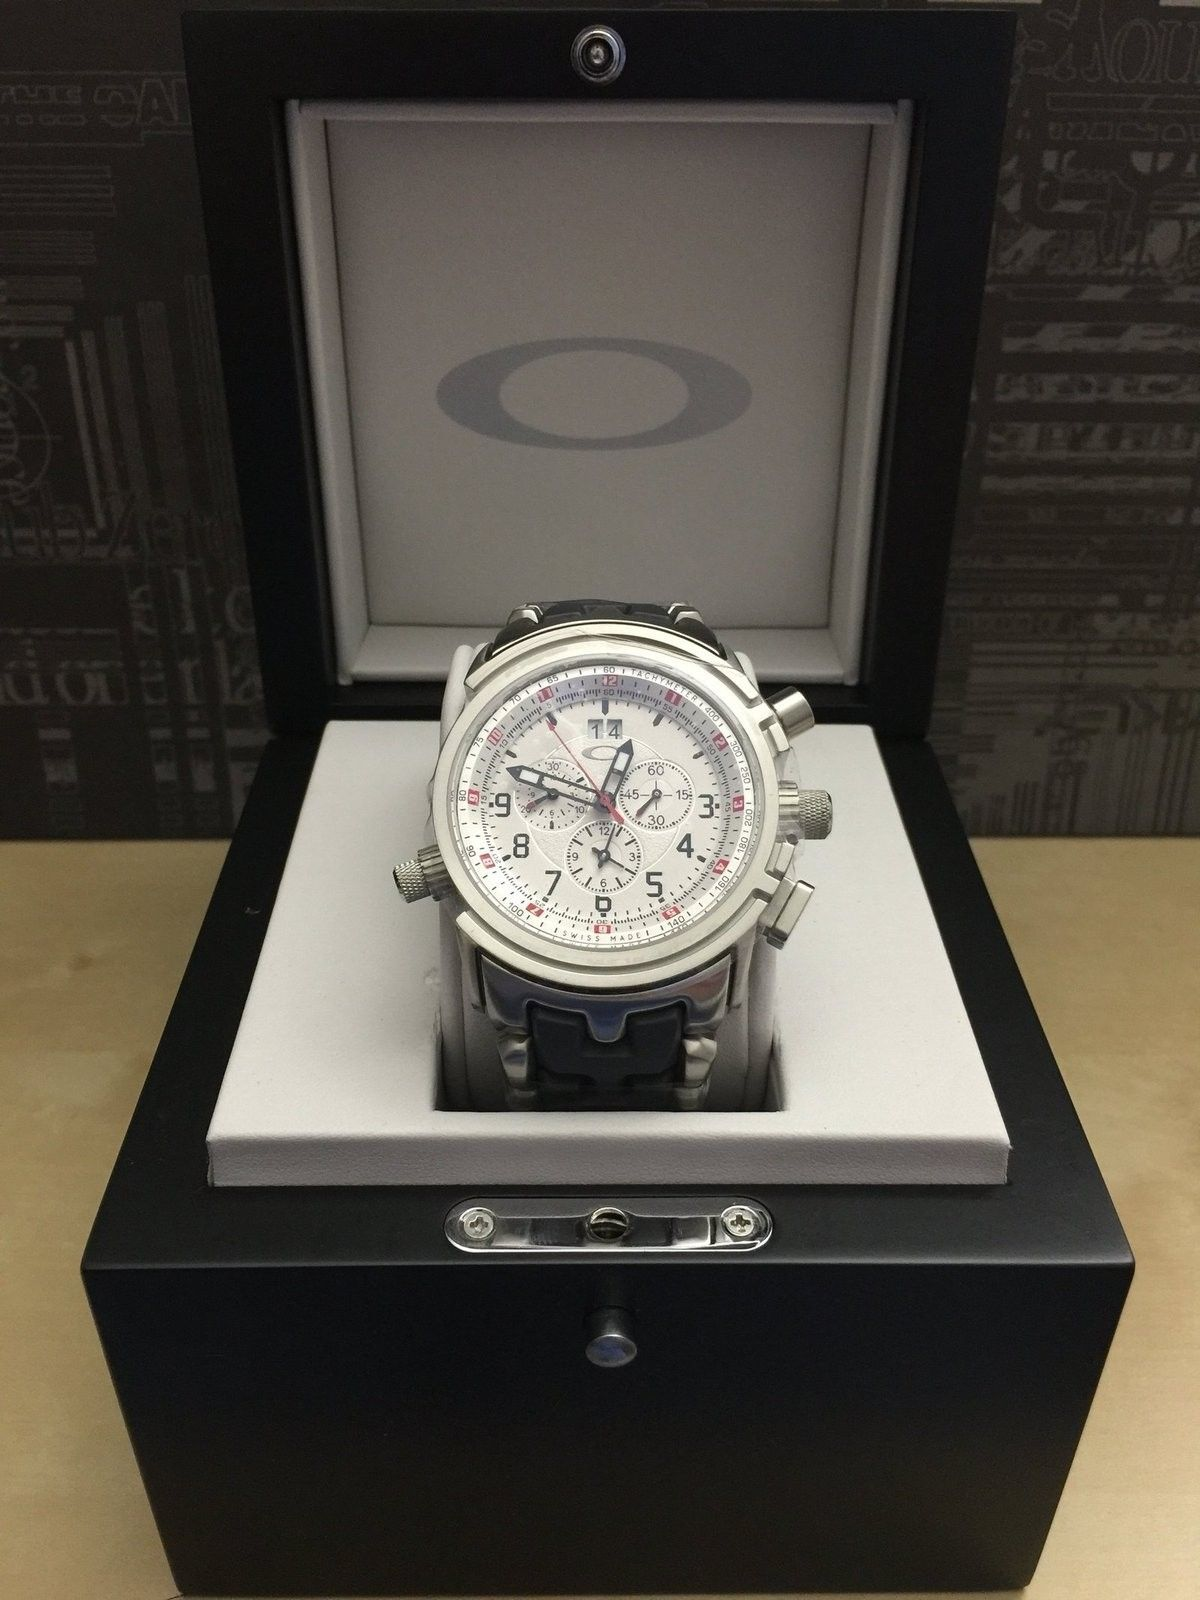 Watches for sale: Brand new 12 Gauge White Dial with Stainless Steel Bracelet (last one) - IMG_4655.JPG